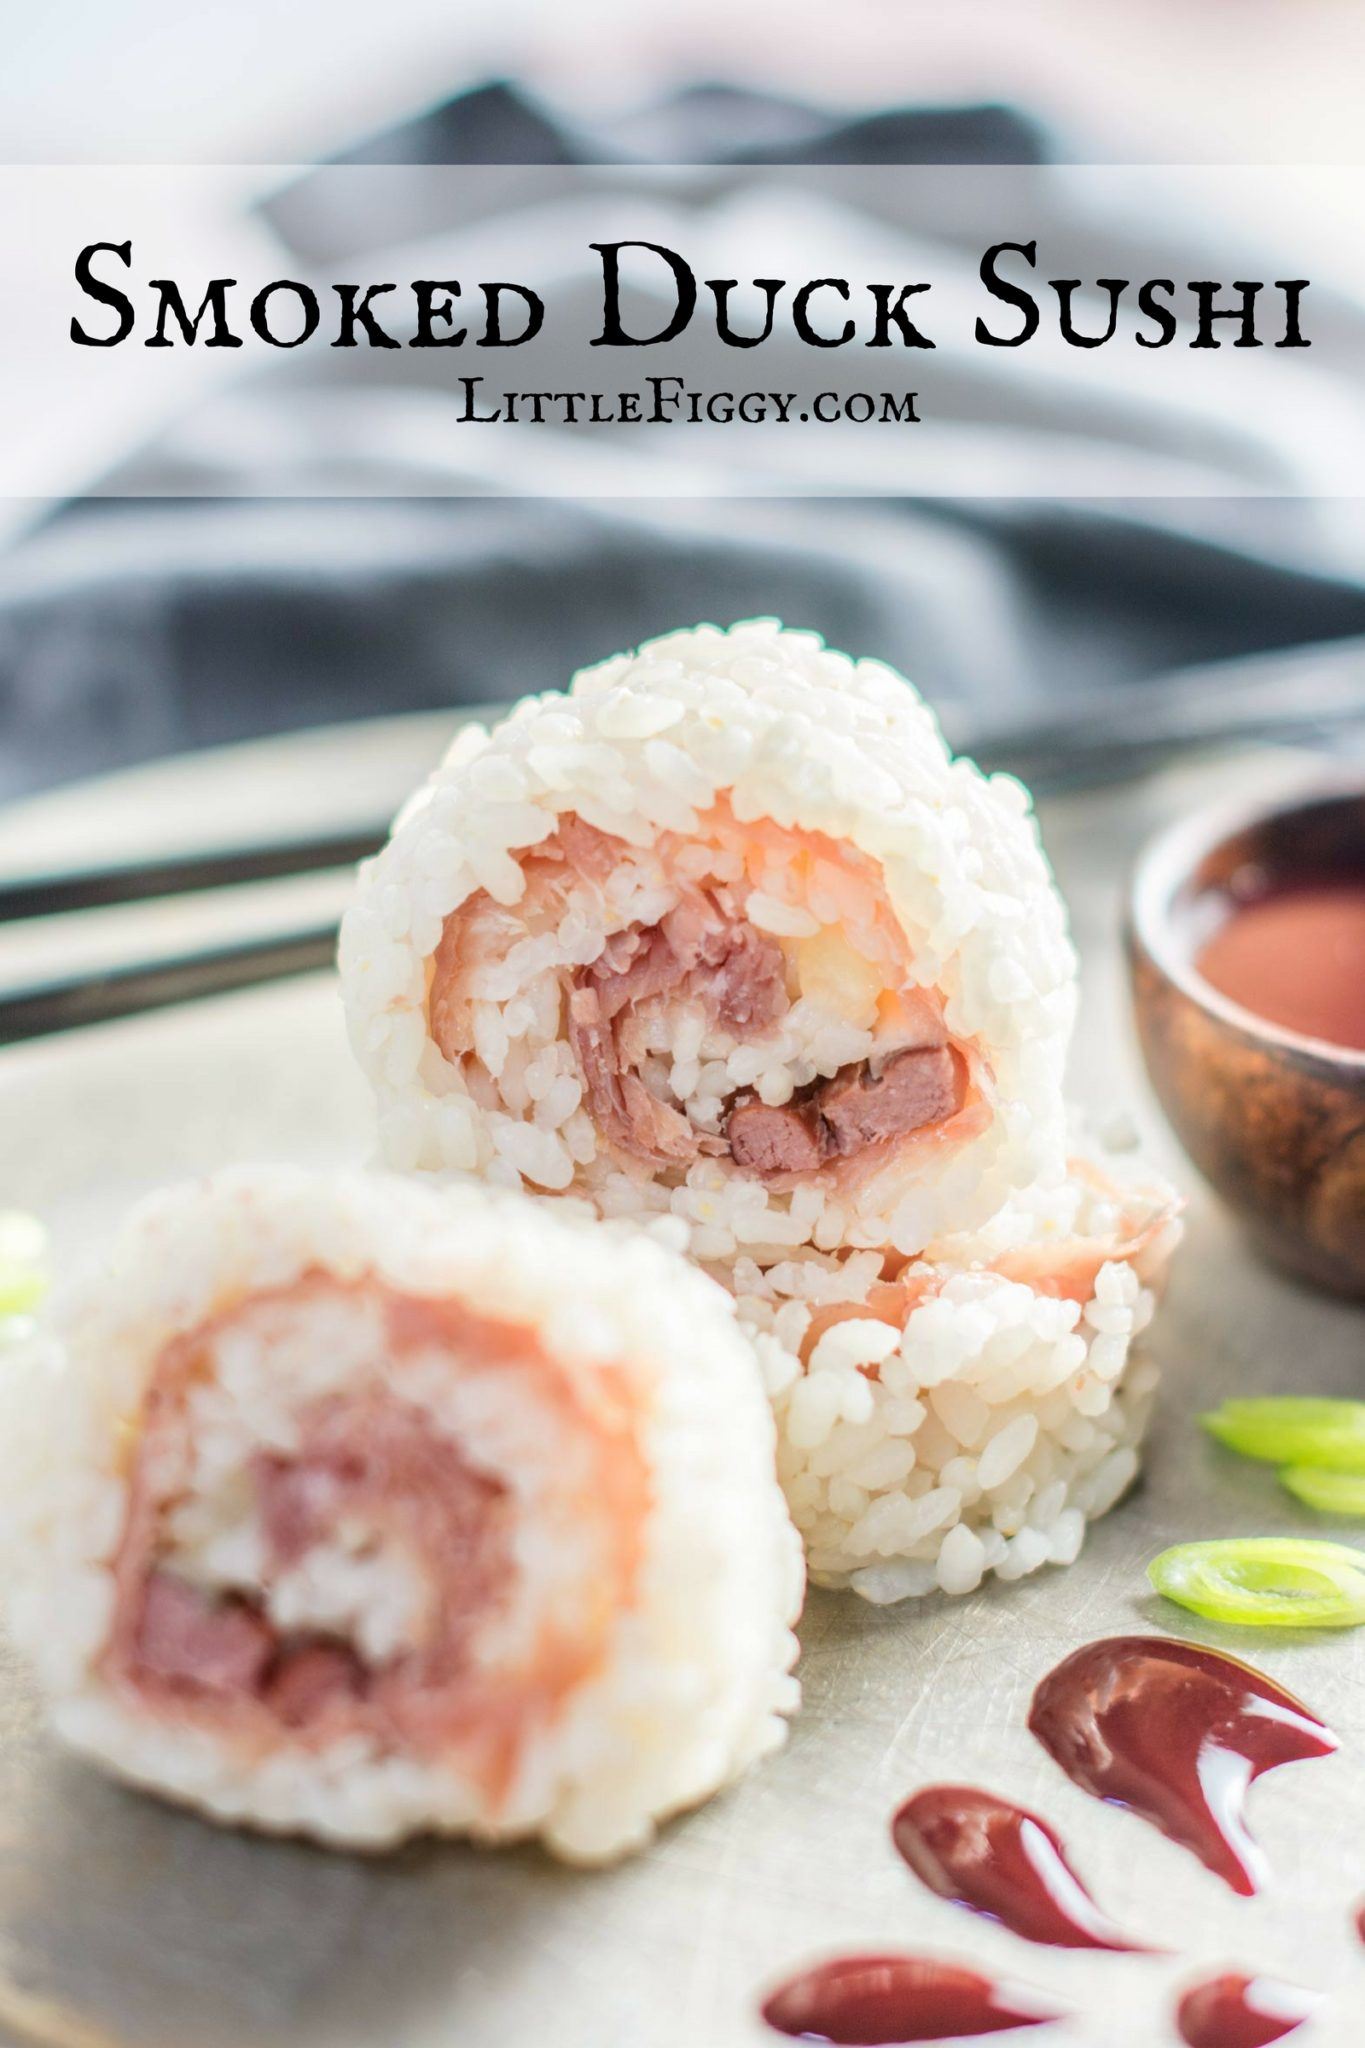 Create this delicious Smoked Duck Sushi with Blackberry Dipping Sauce Recipe, great for entertaining this summer or anytime of year! Create your own summer recipes using quality products from @3pigspate! Find this recipe at Little Figgy Food #3PigsPate #UnboreYourBoard #ad